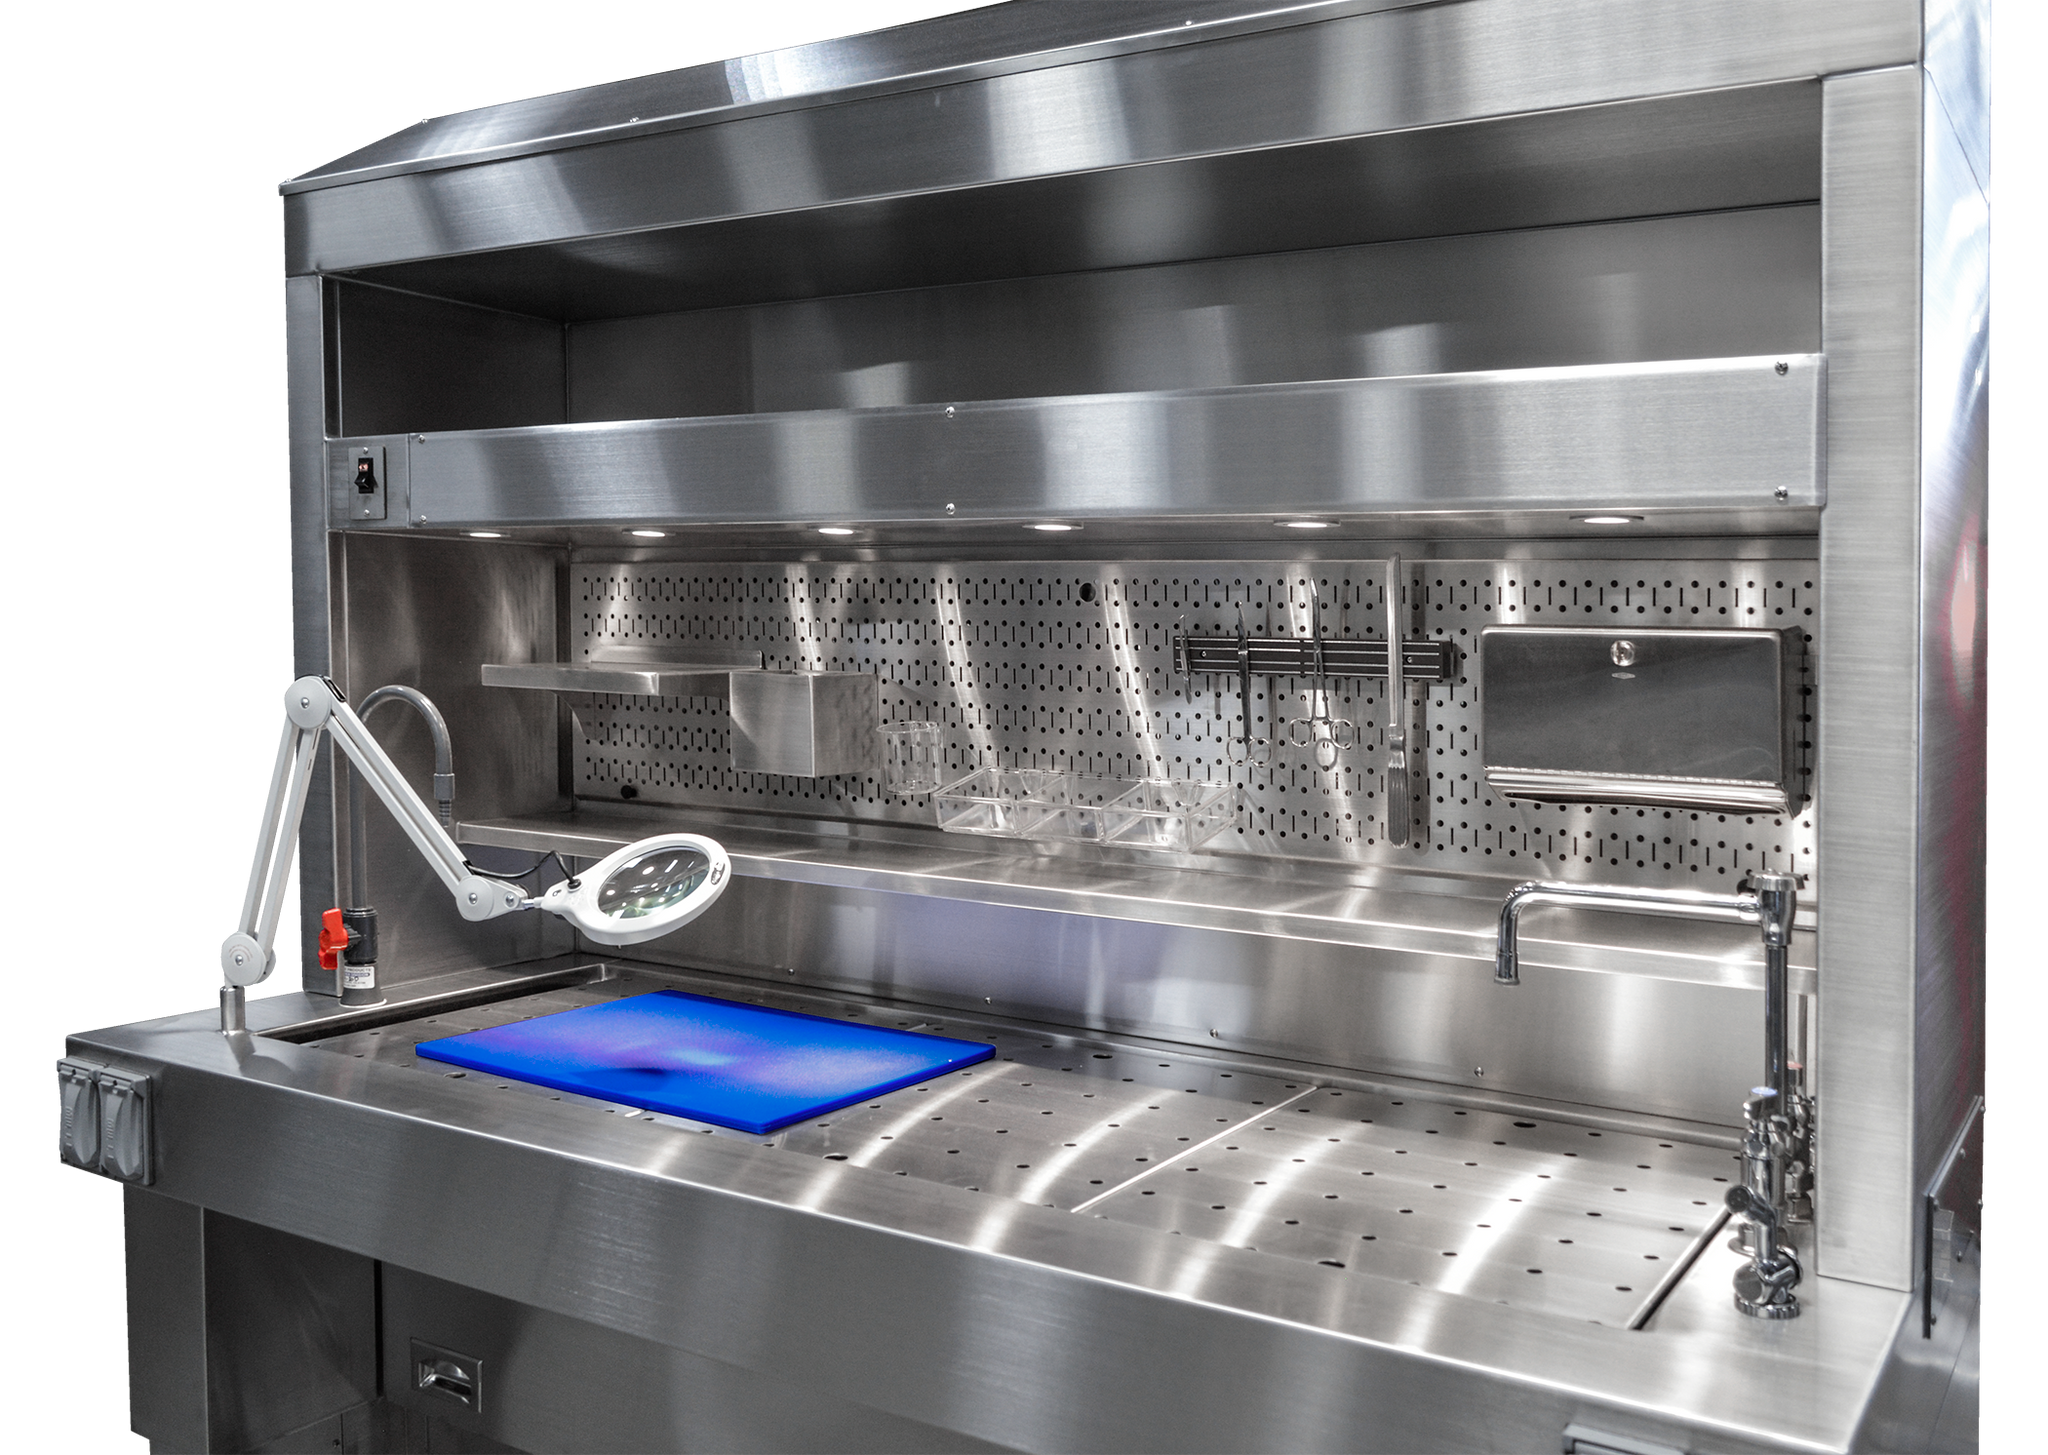 Pegboard Backsplash - Elevating Pathology Workstation with Downdraft & Backdraft Ventilation